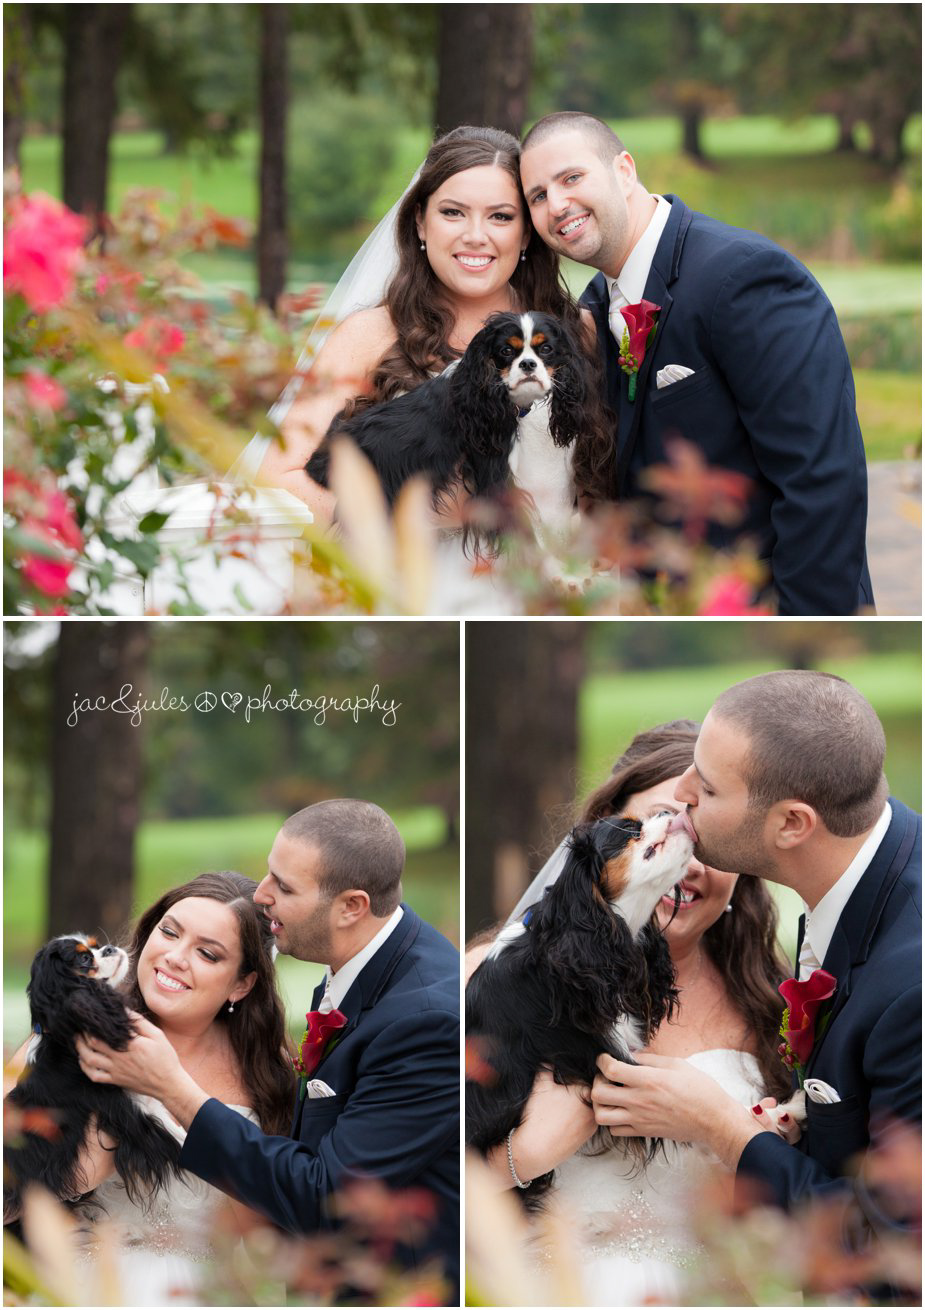 Bride and groom with their dog at Frogbridge in Millville, NJ by JacnJules